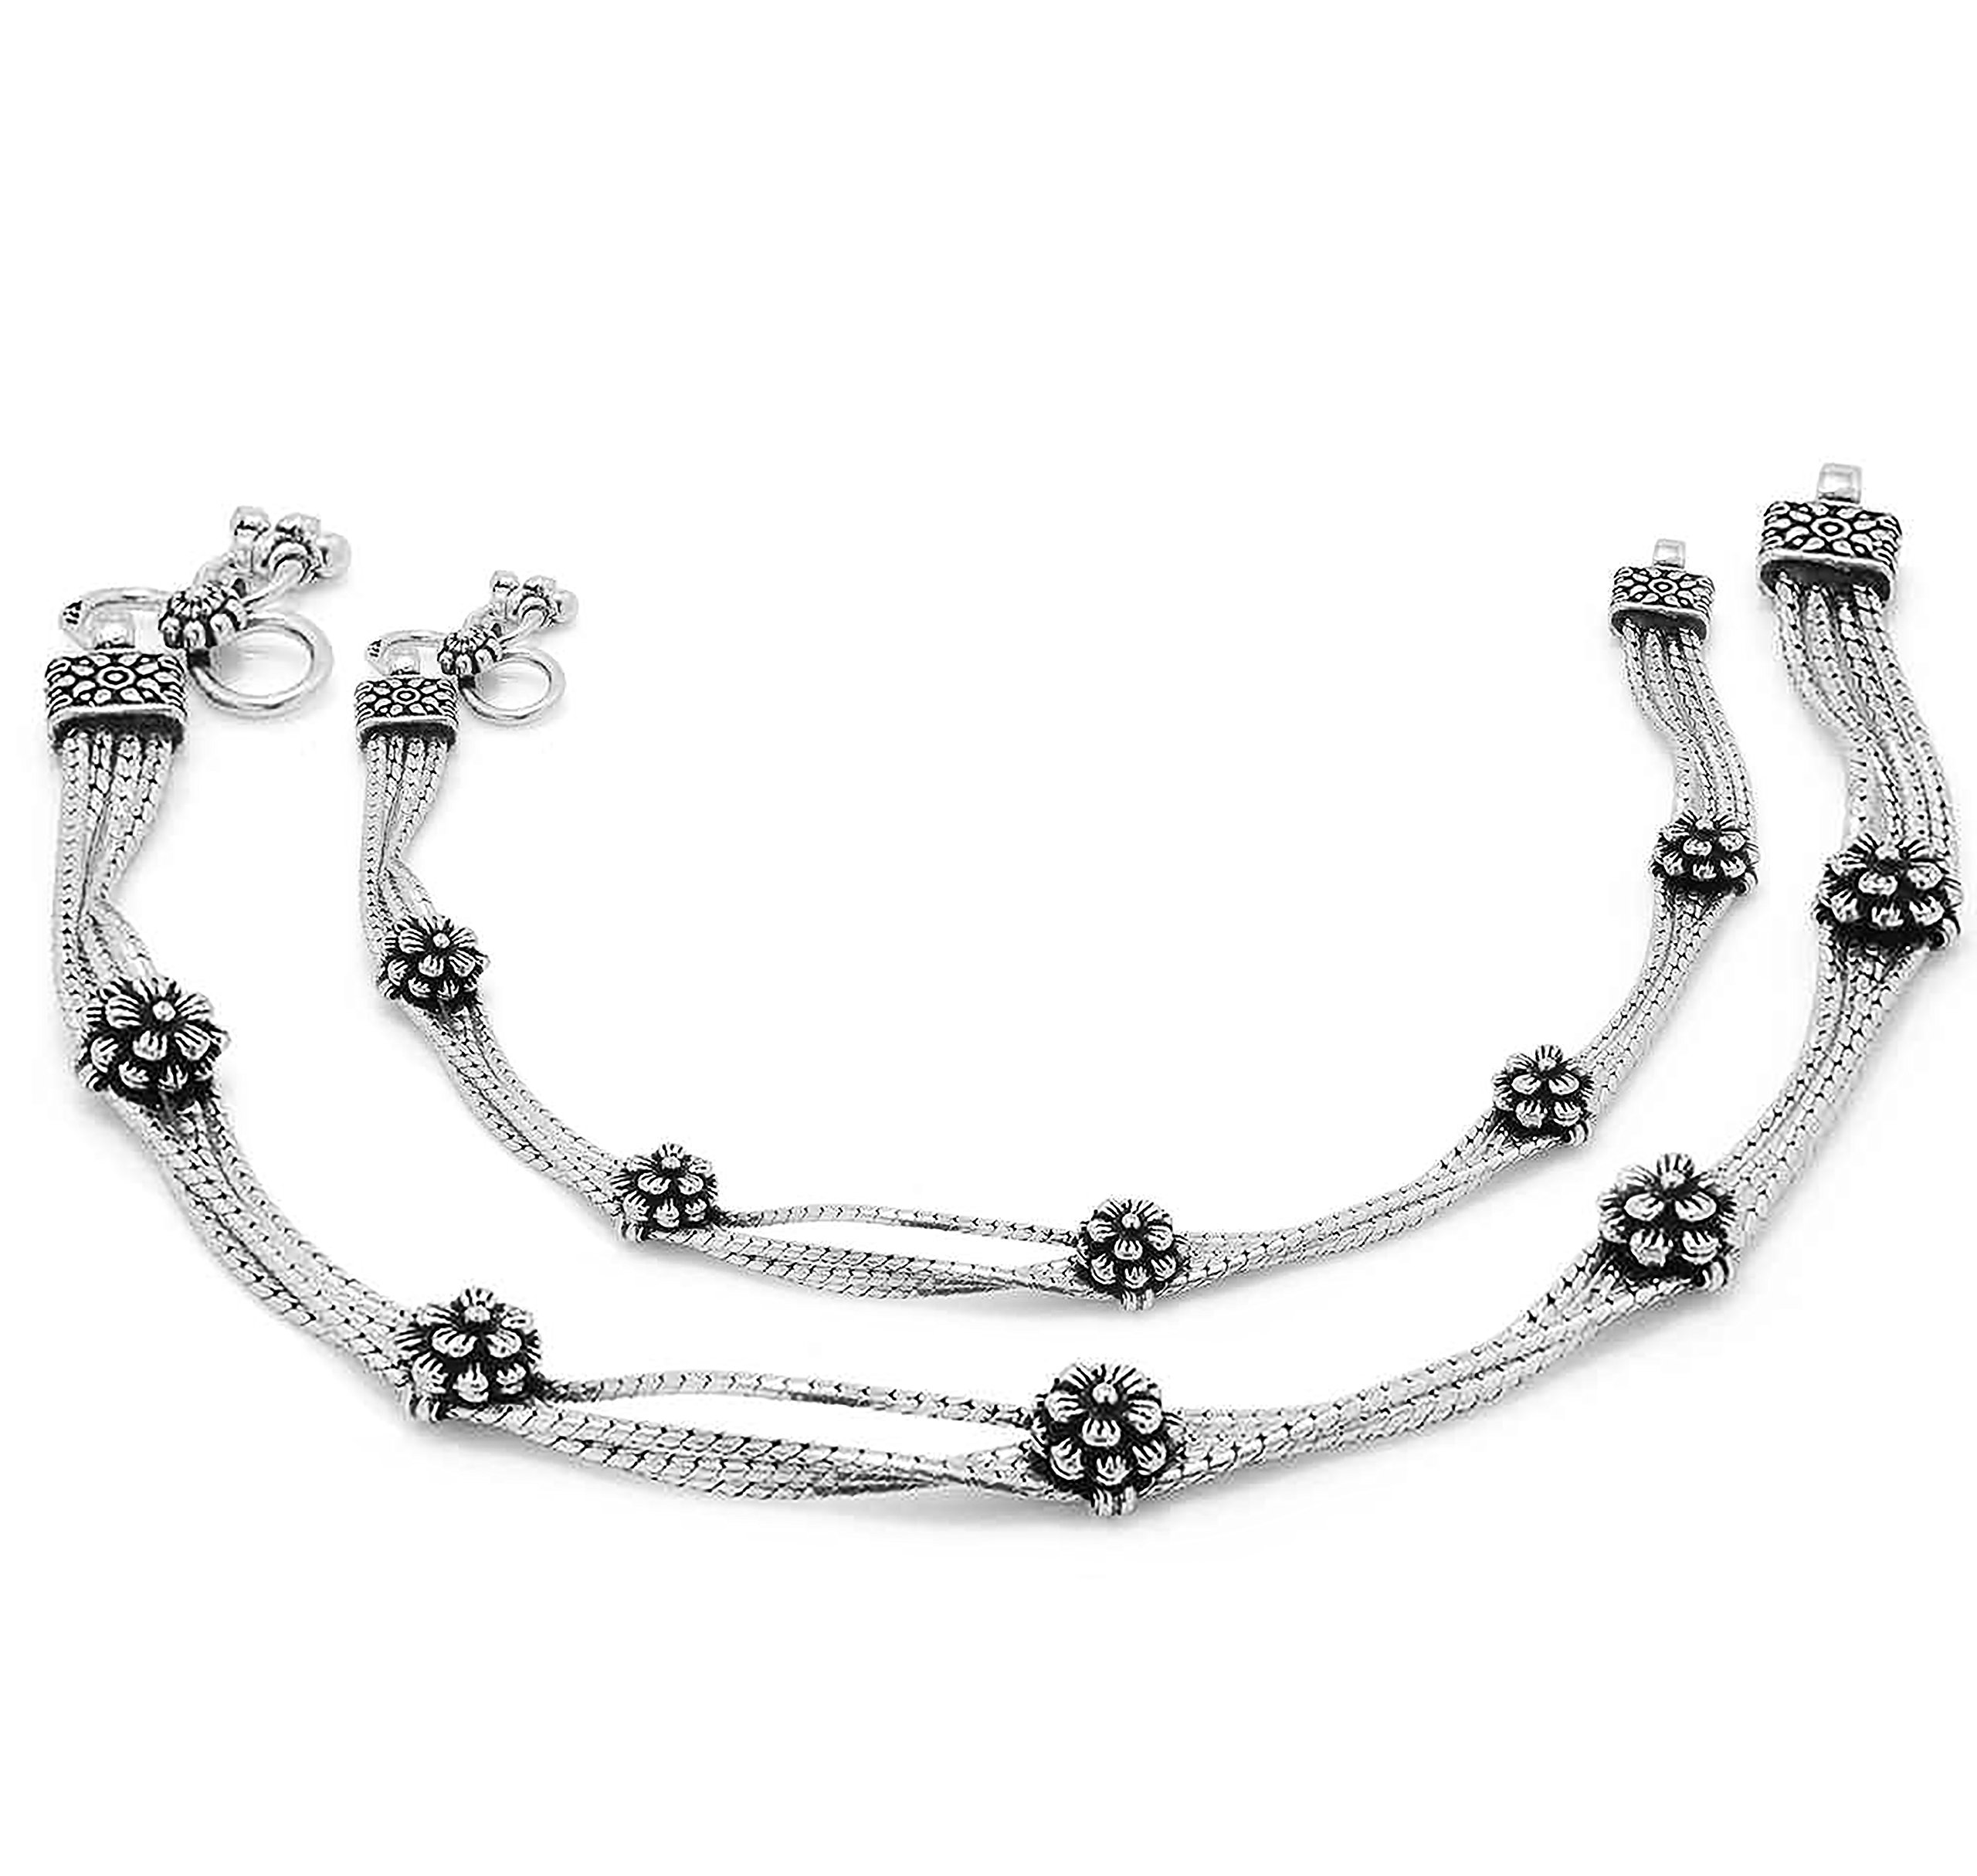 D&D Crafts Attractive Sterling Silver Pair of Anklets For Girls, Women